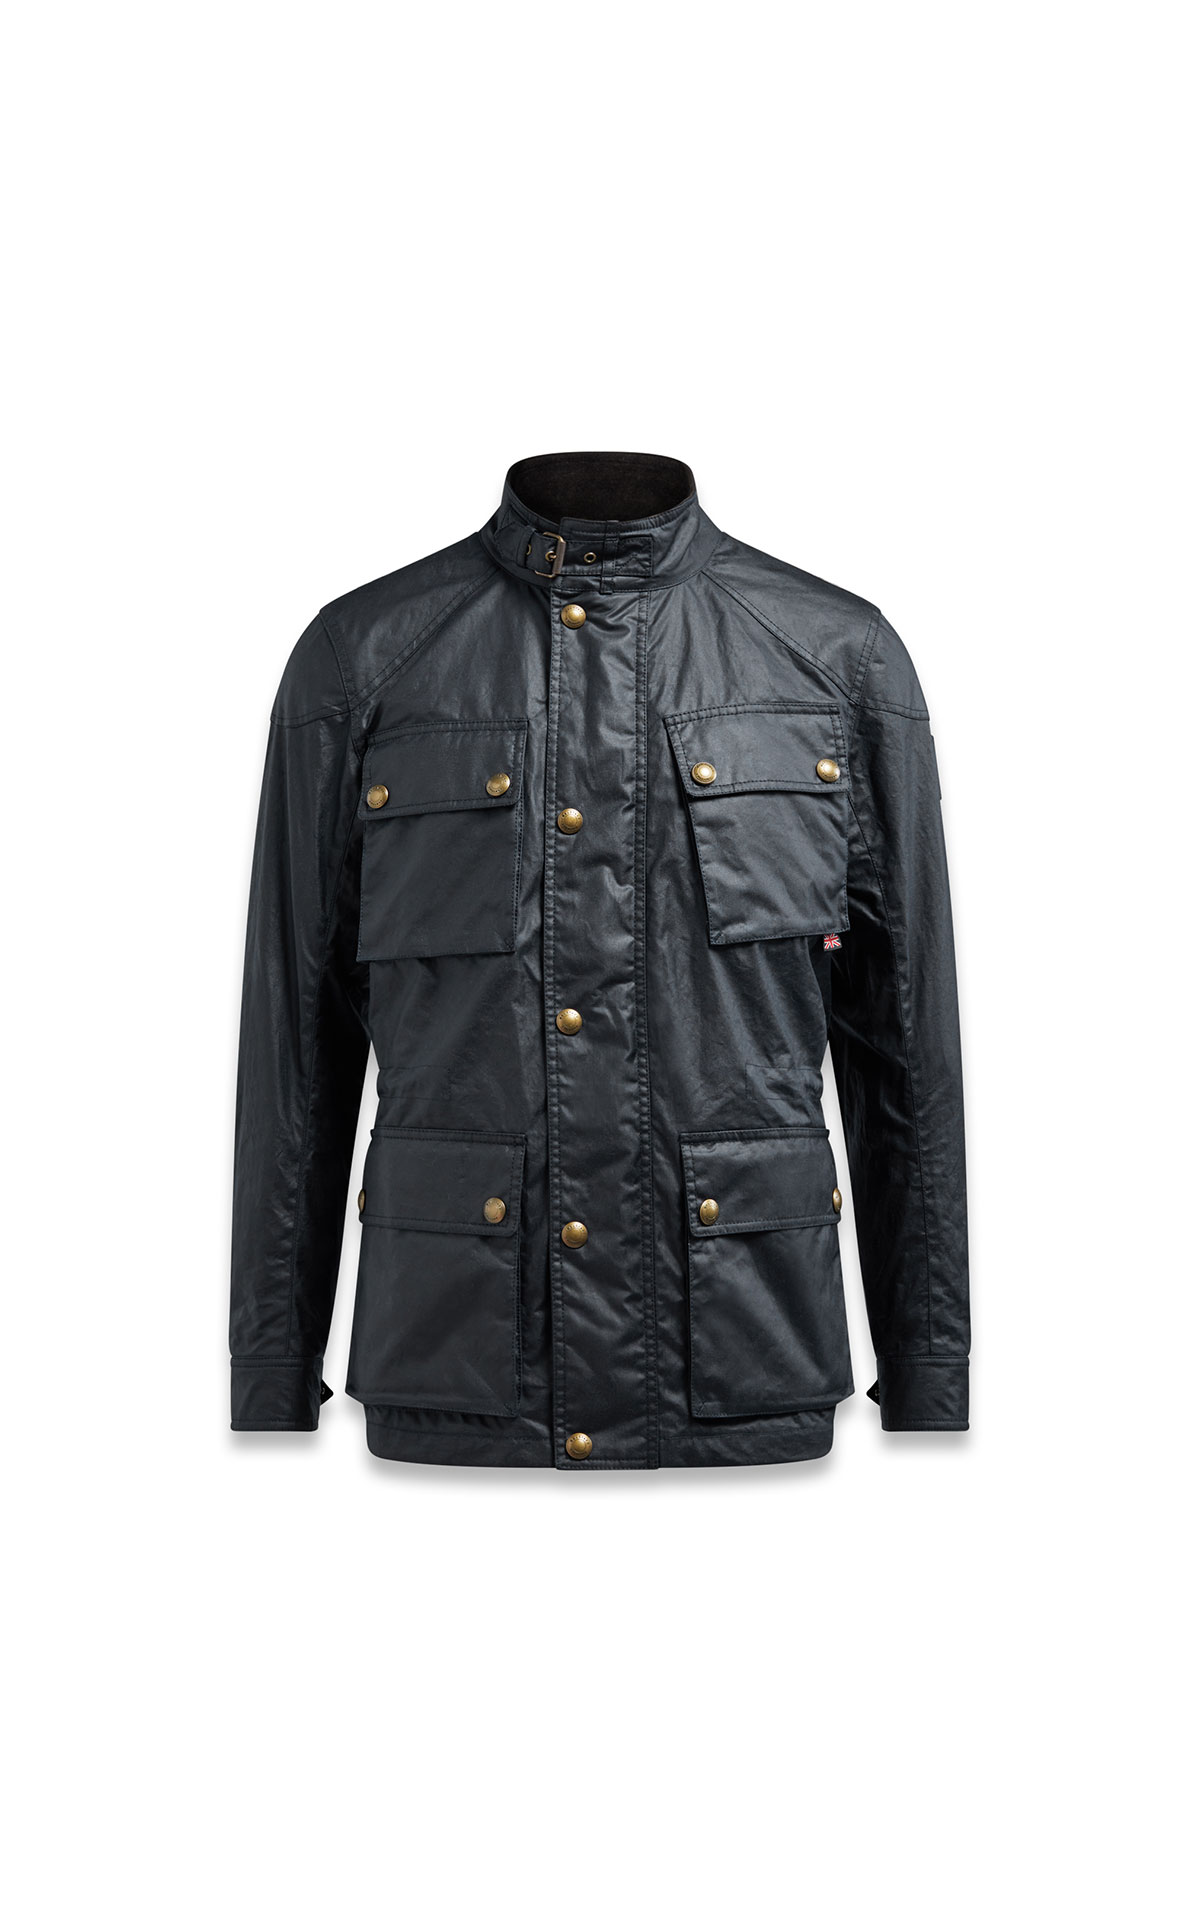 Belstaff Fieldmaster jacket from Bicester Village